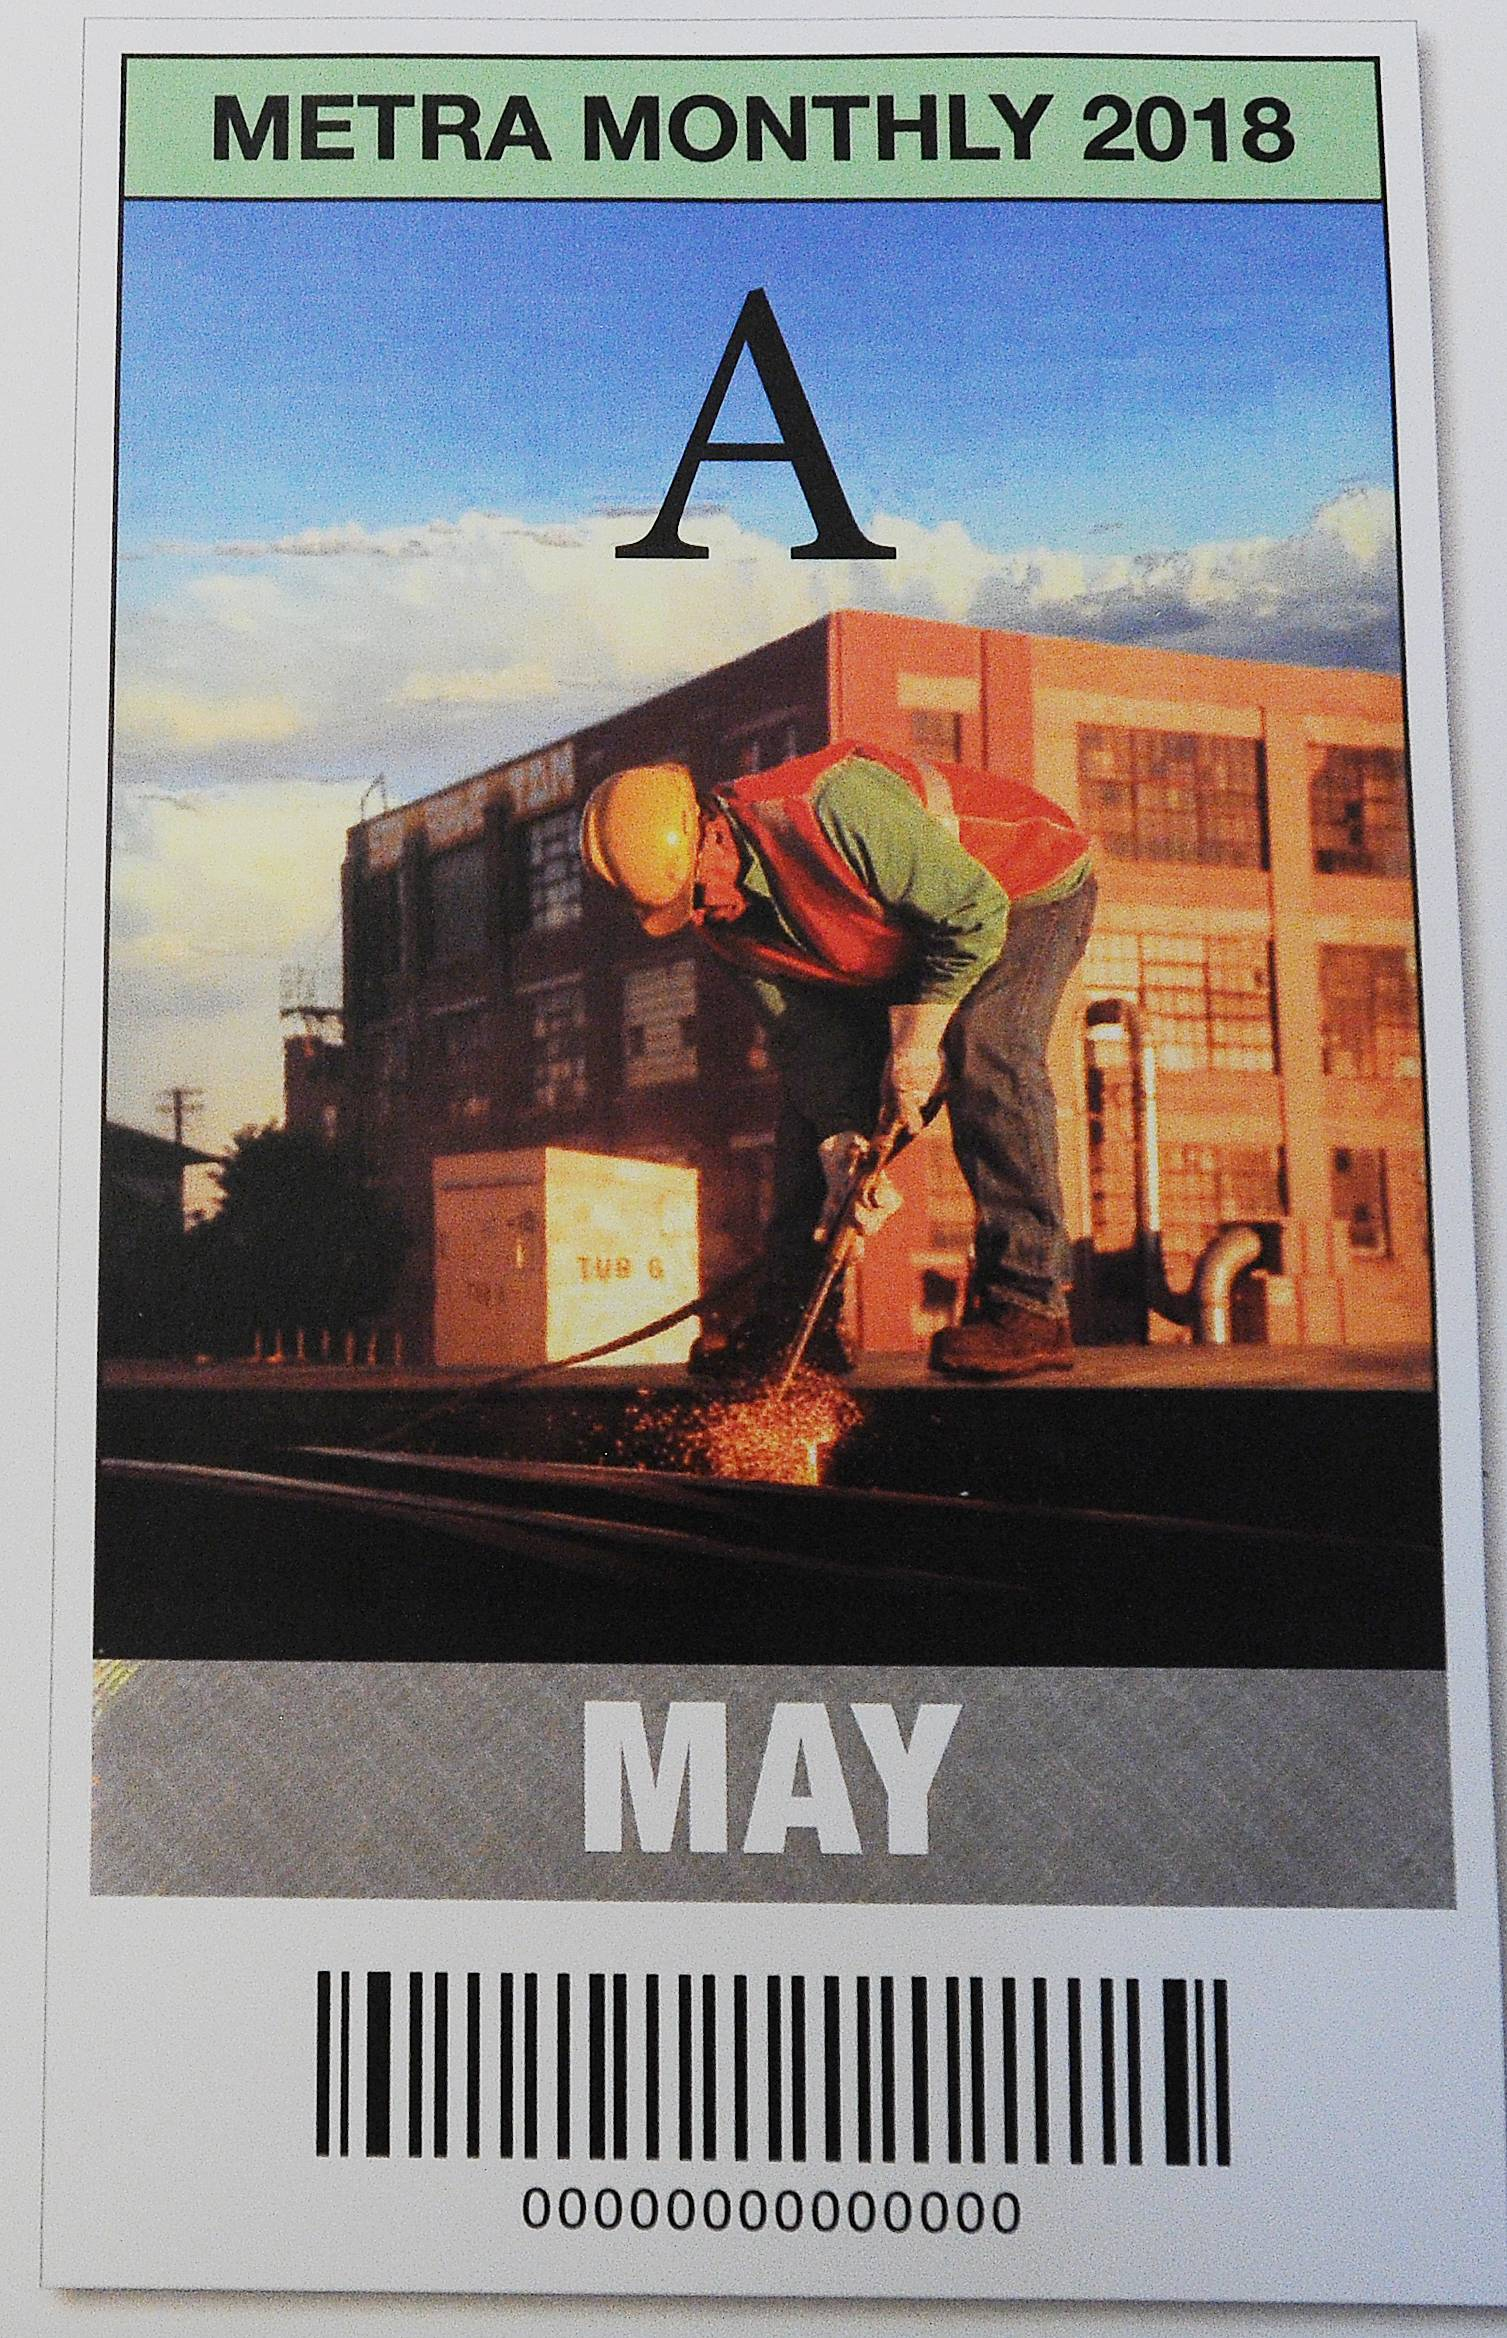 Metra graphic designer Ron Wojkovich uses photos shot by Metra employees to create a vintage look on monthly passes that evokes old railway posters such as this image of a worker welding.